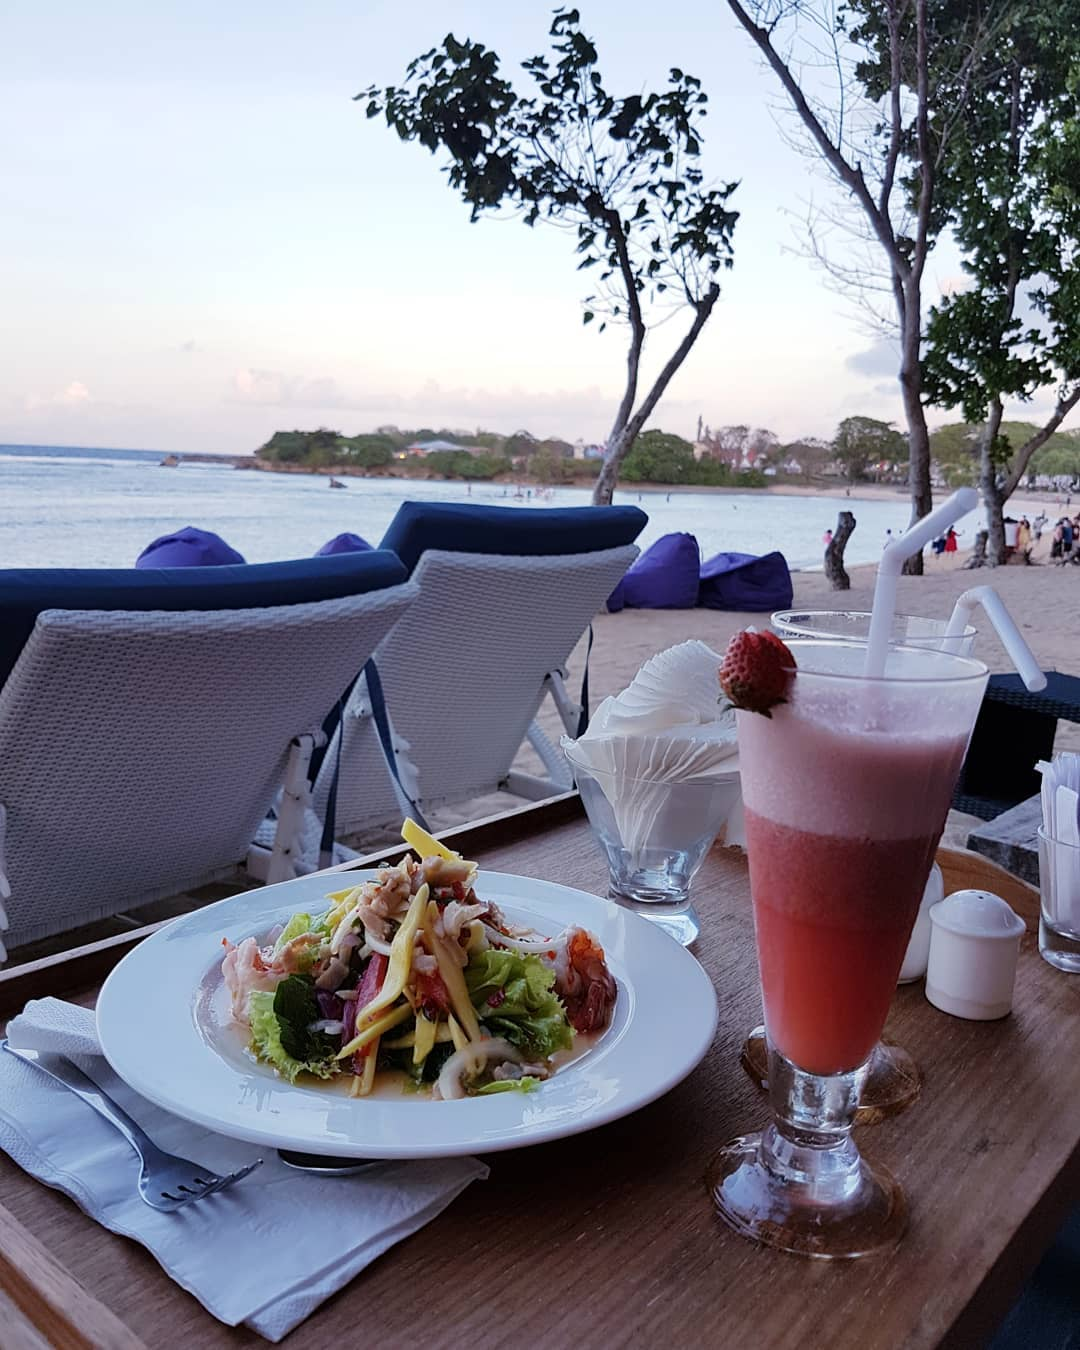 Bali Beach Club; Agendaz Beach Club